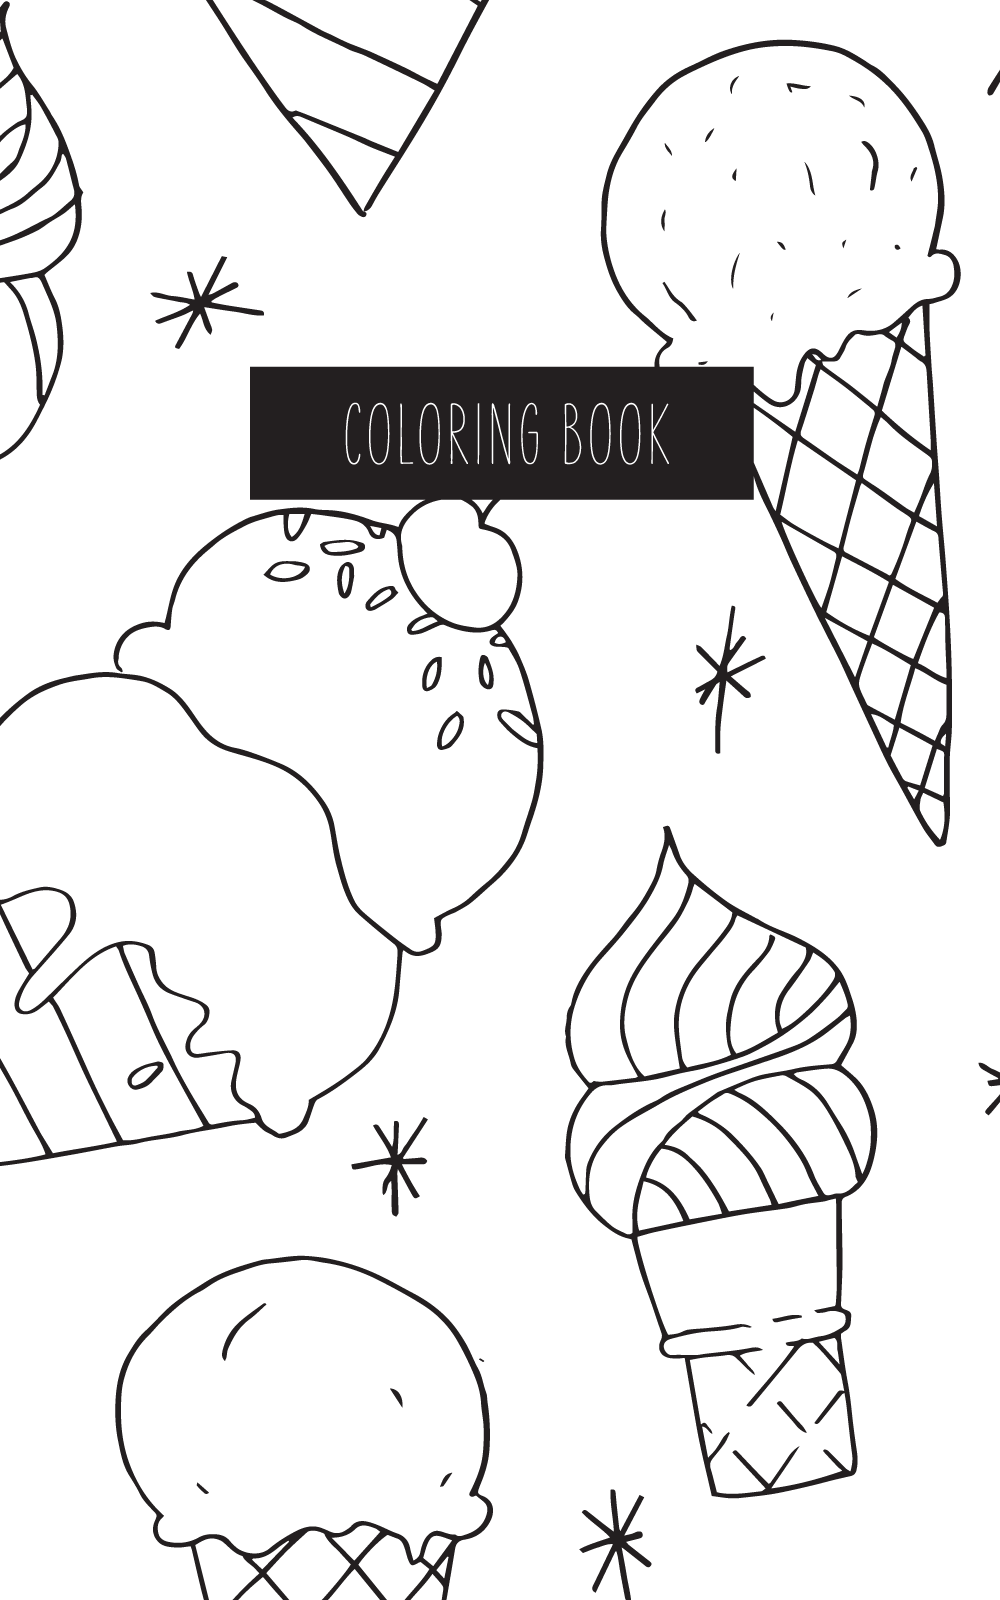 May Designs Kids Coloring Notebook